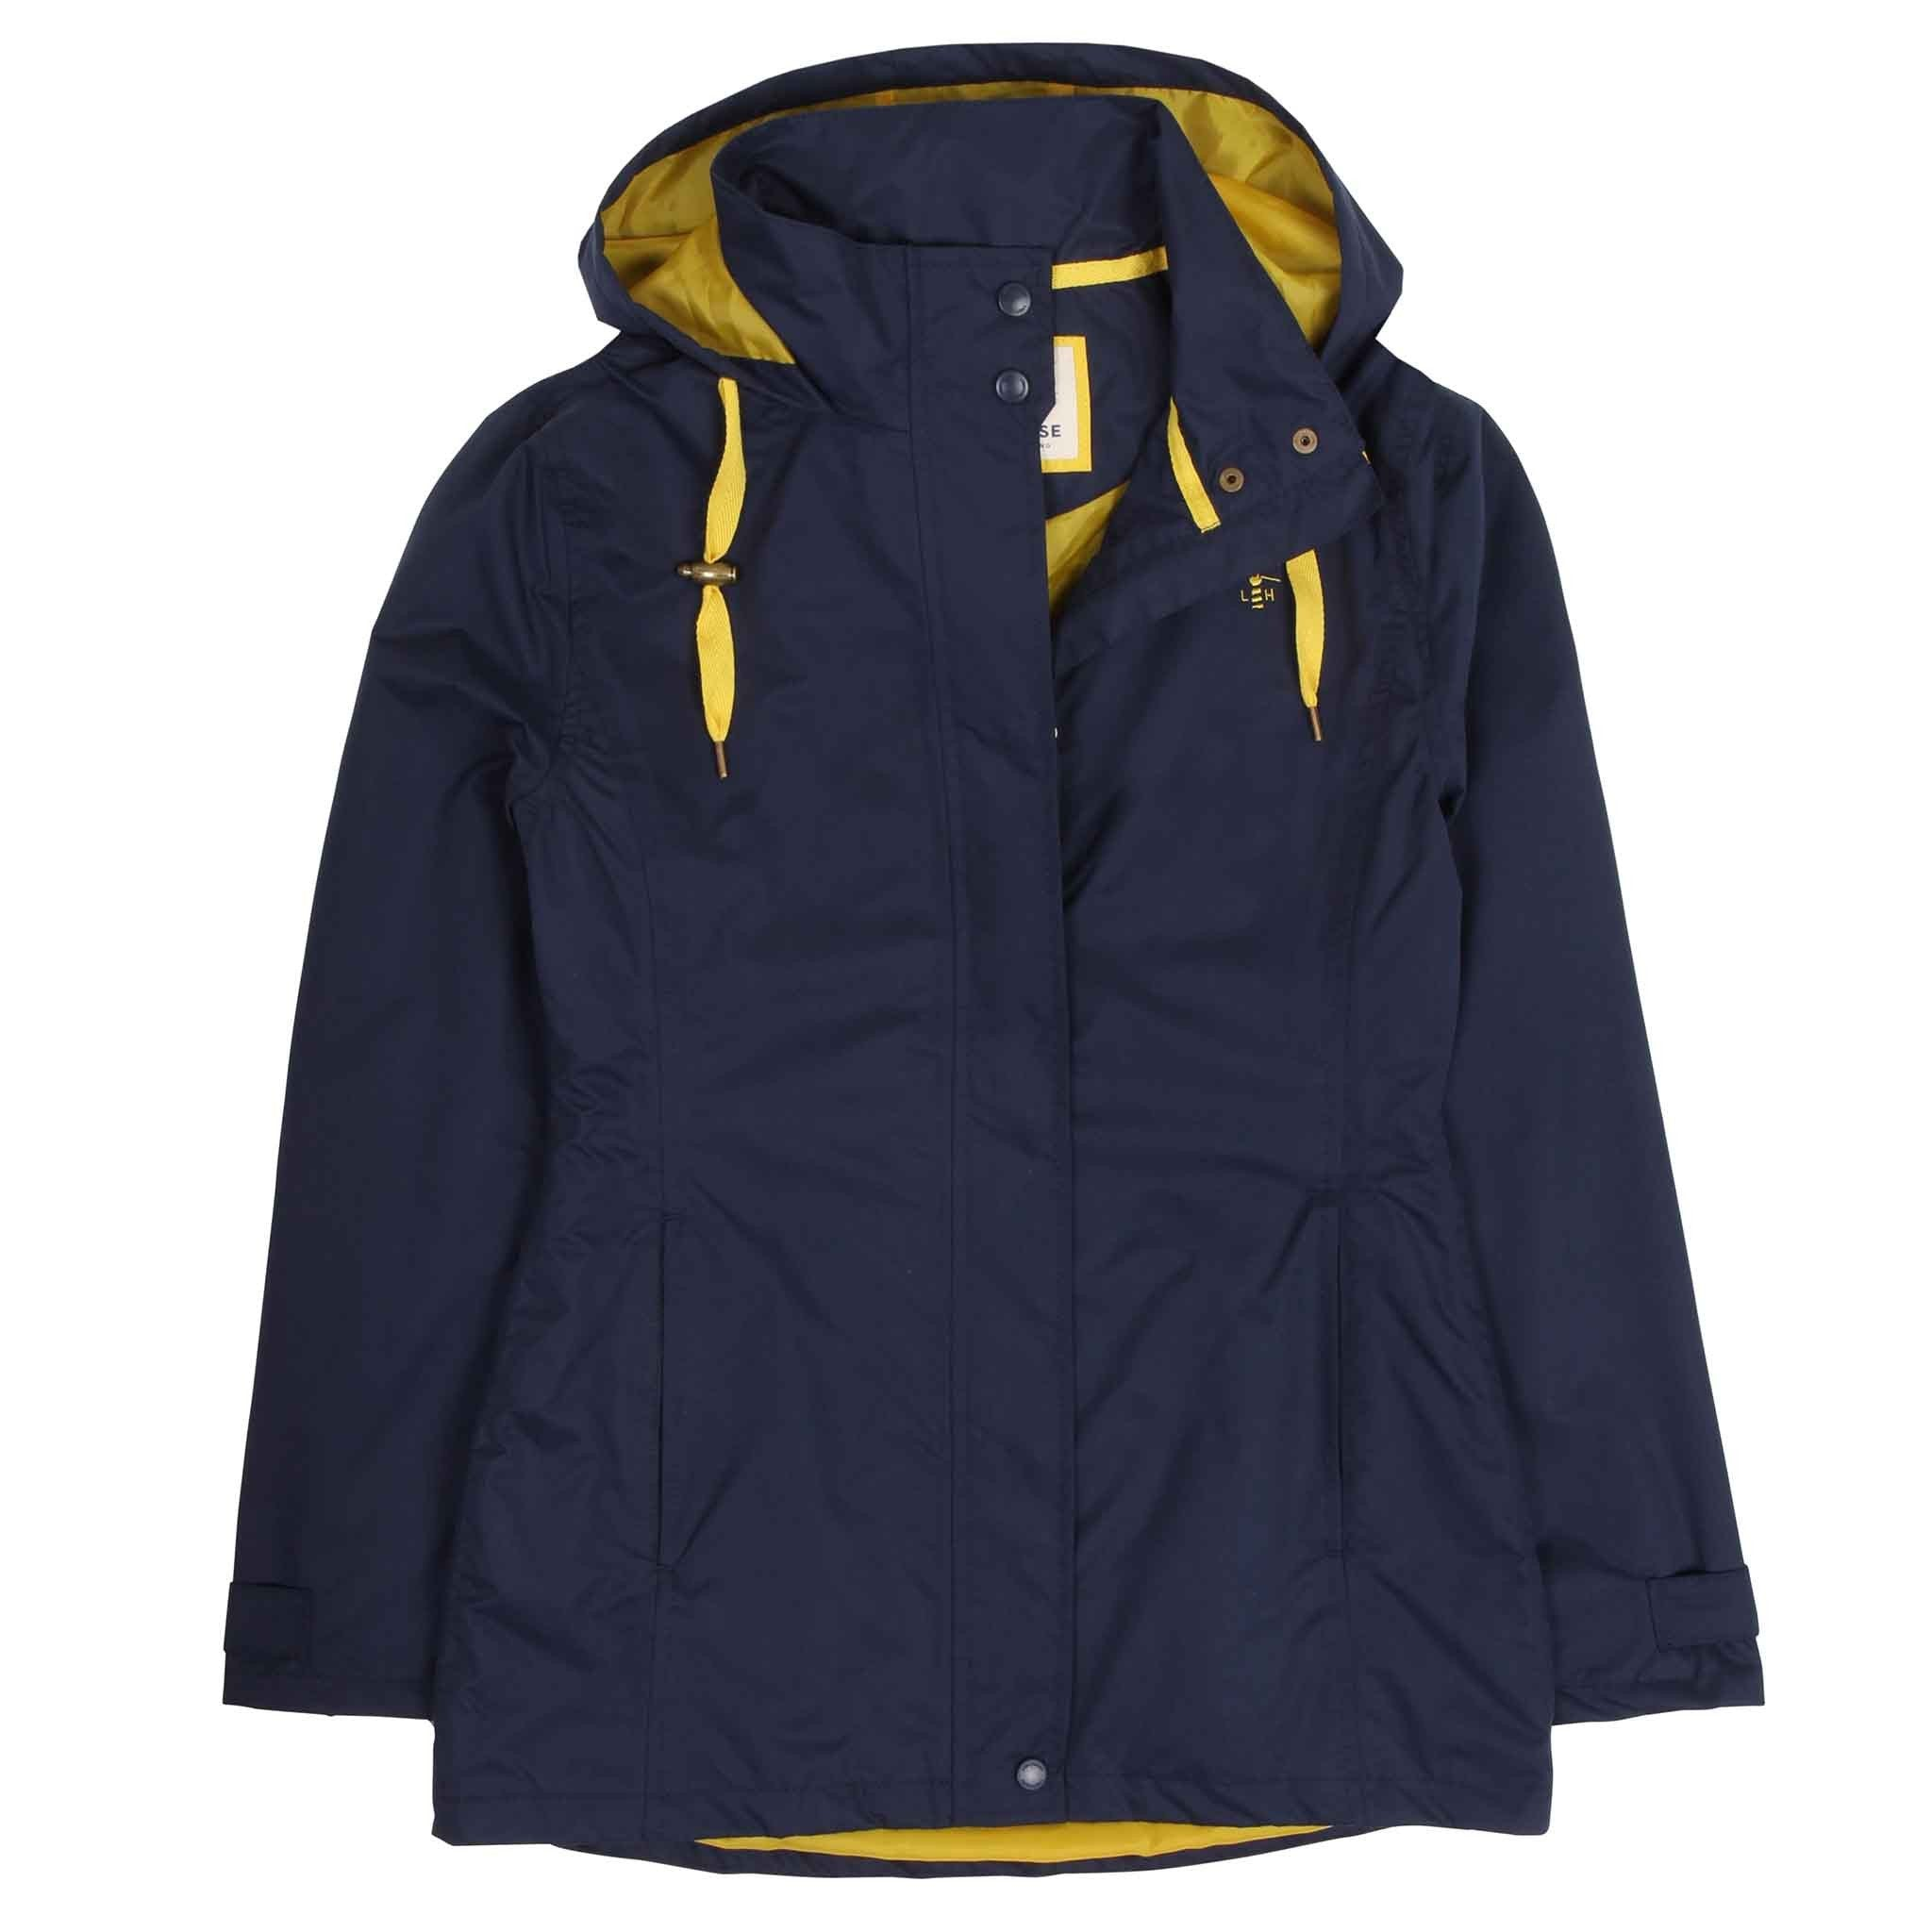 Beachcomber Waterproof Coat - French Navy